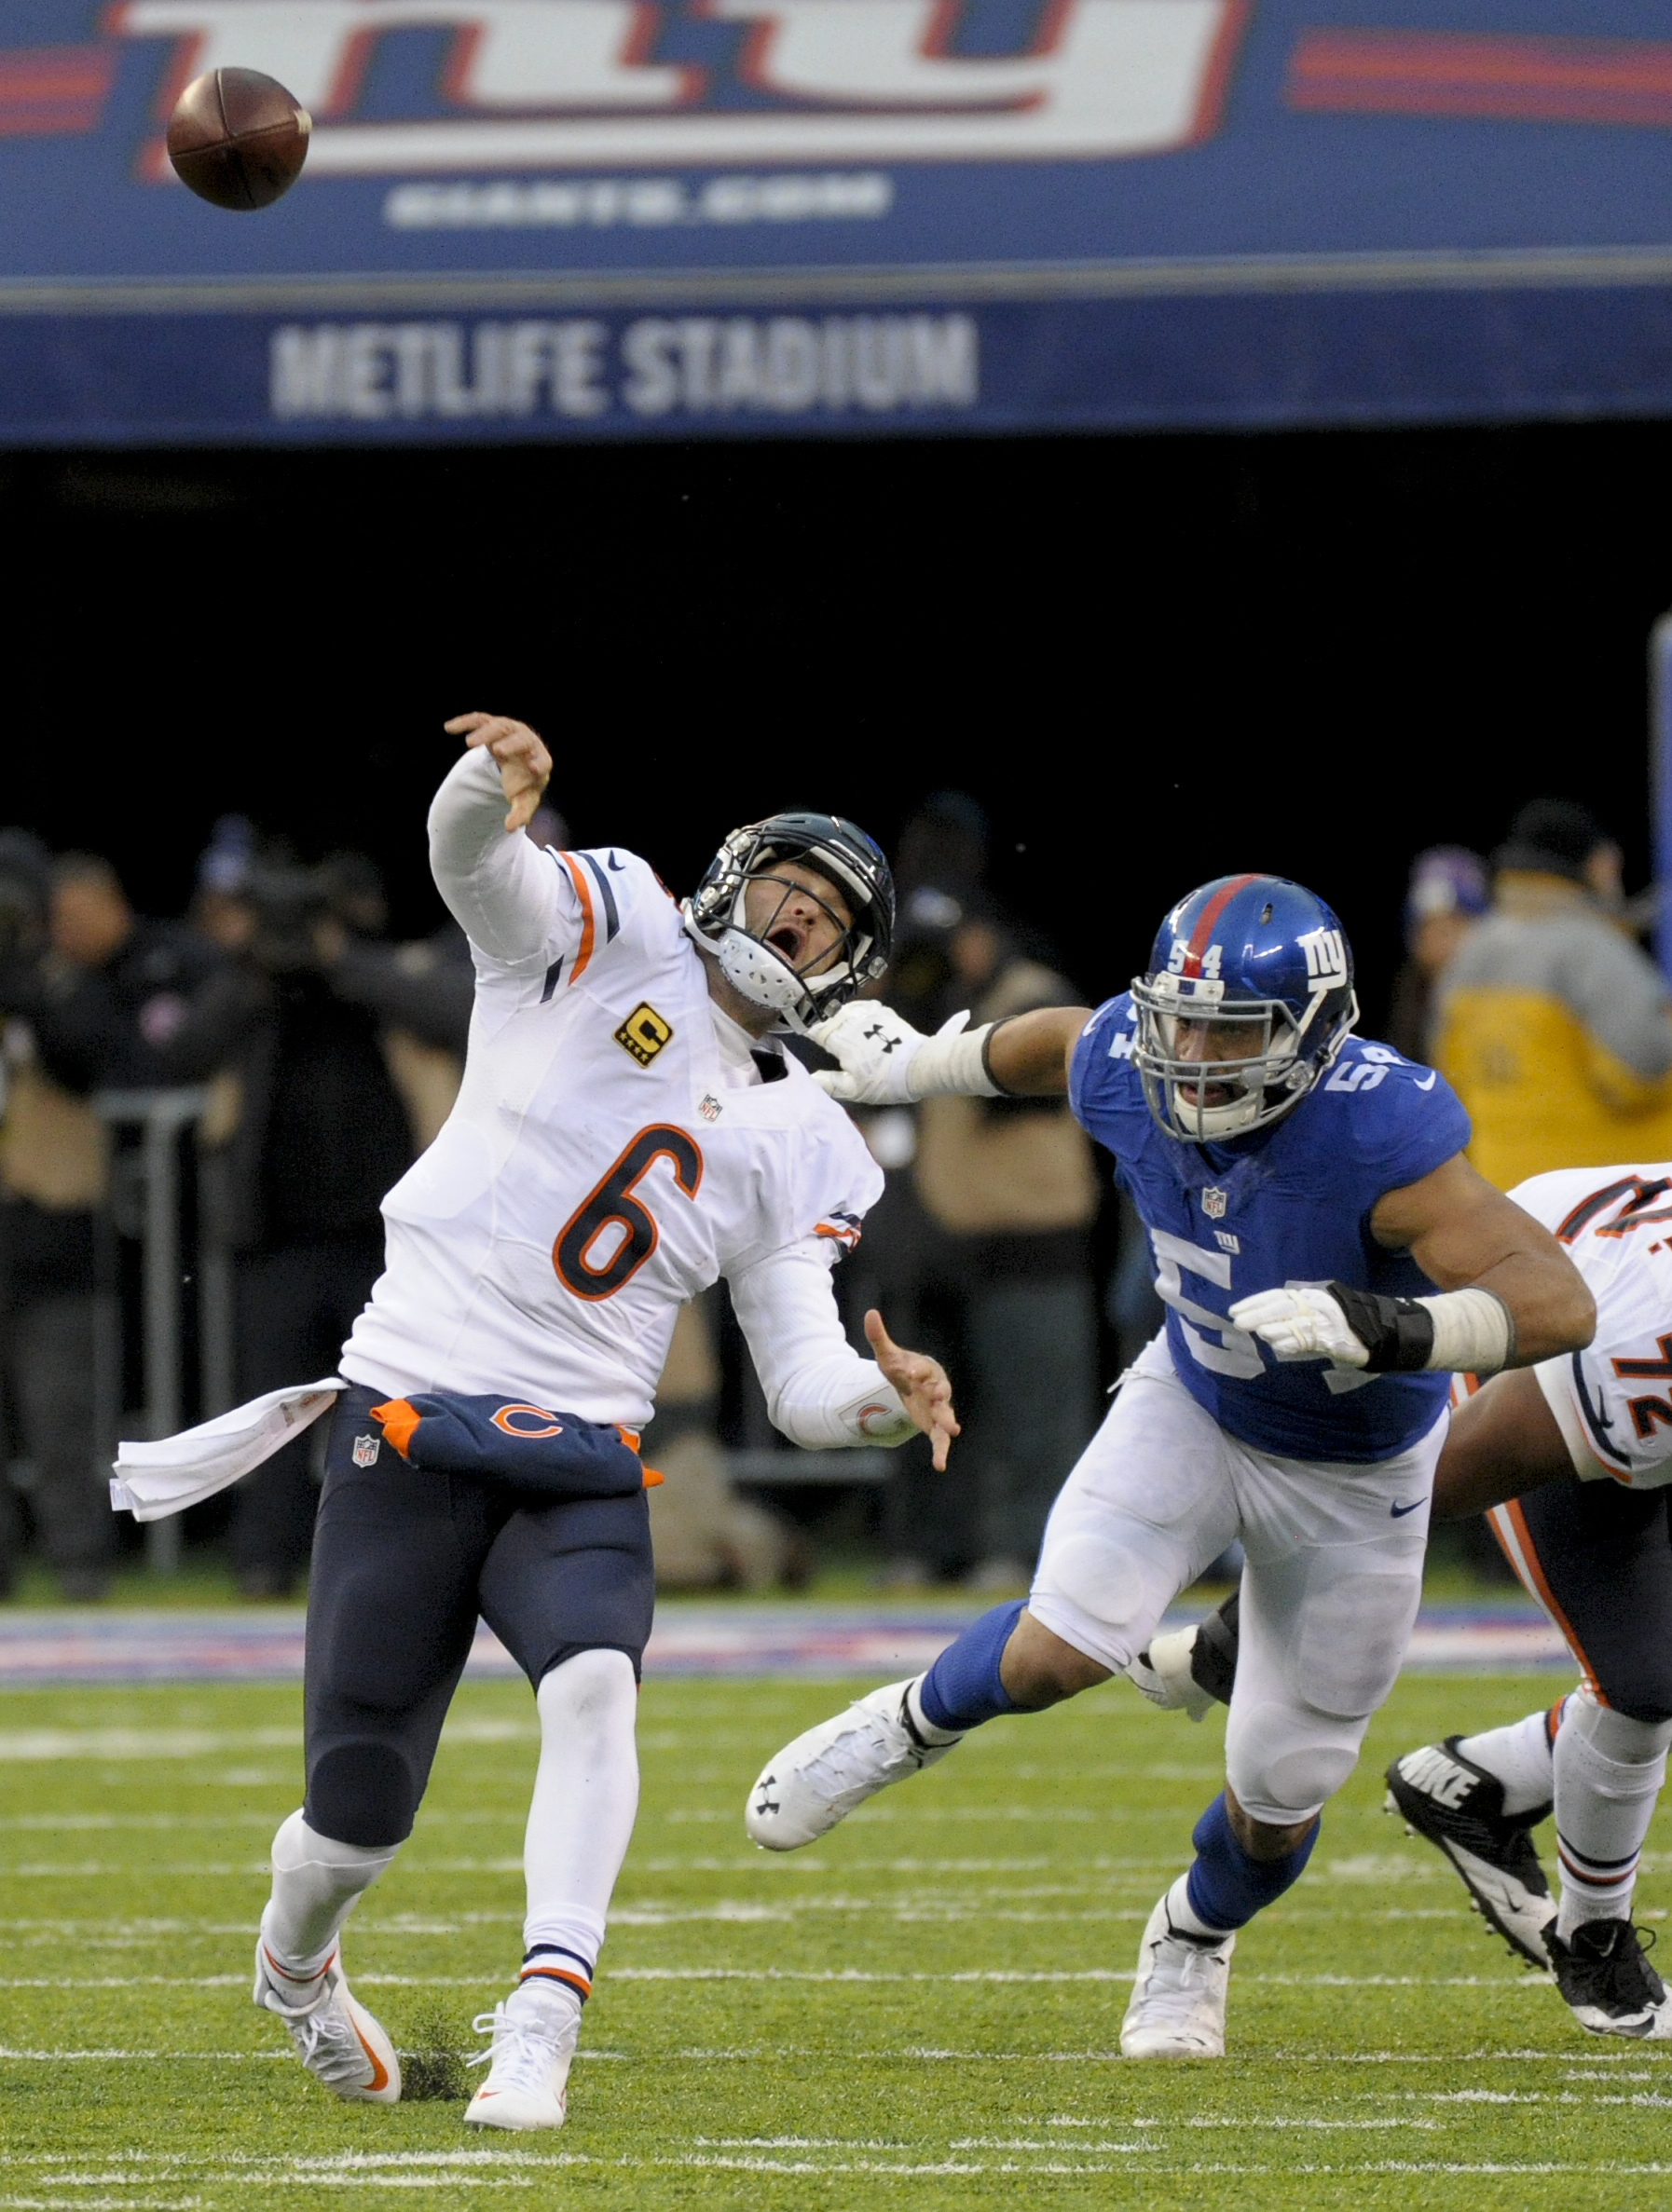 Chicago Bears quarterback Jay Cutler (6) throws under pressure from New York Giants defensive end Olivier Vernon (54) during the fourth quarter of an NFL football game, Sunday, Nov. 20, 2016, in East Rutherford, N.J. Cutler threw an interception on the pl